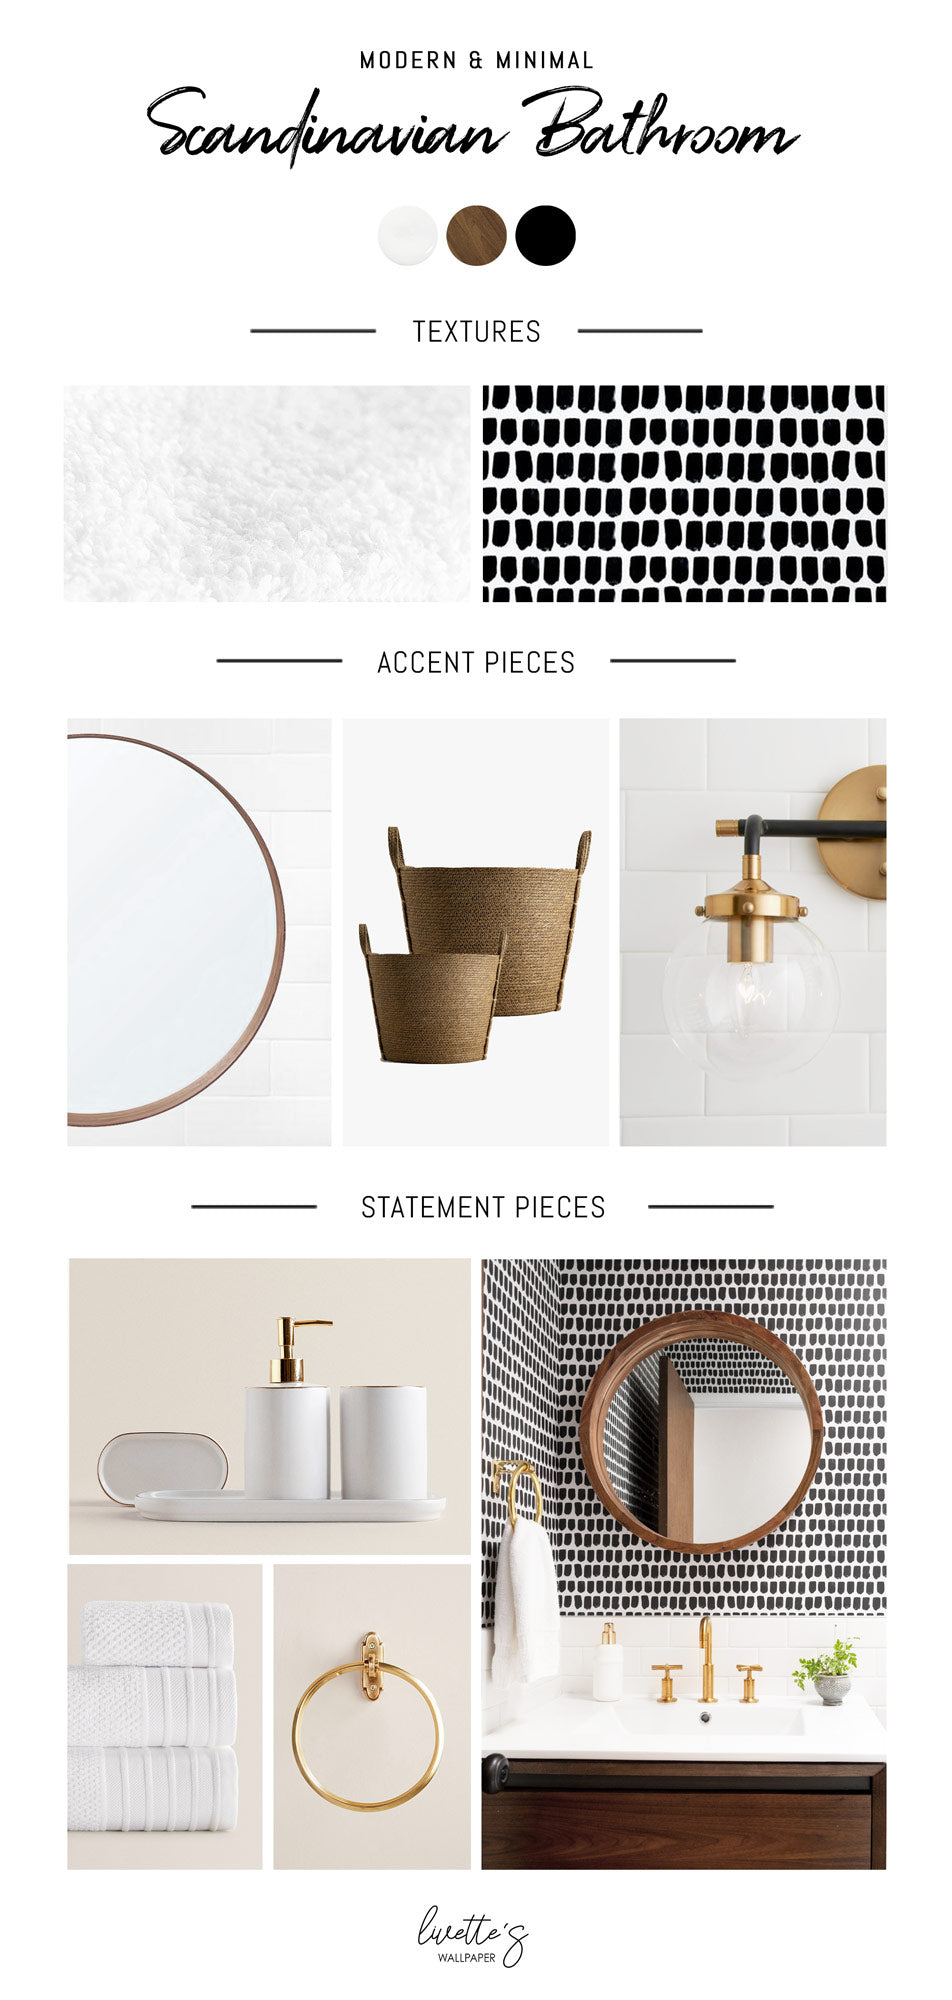 Scandinavian style bathroom interior inspiration mood board